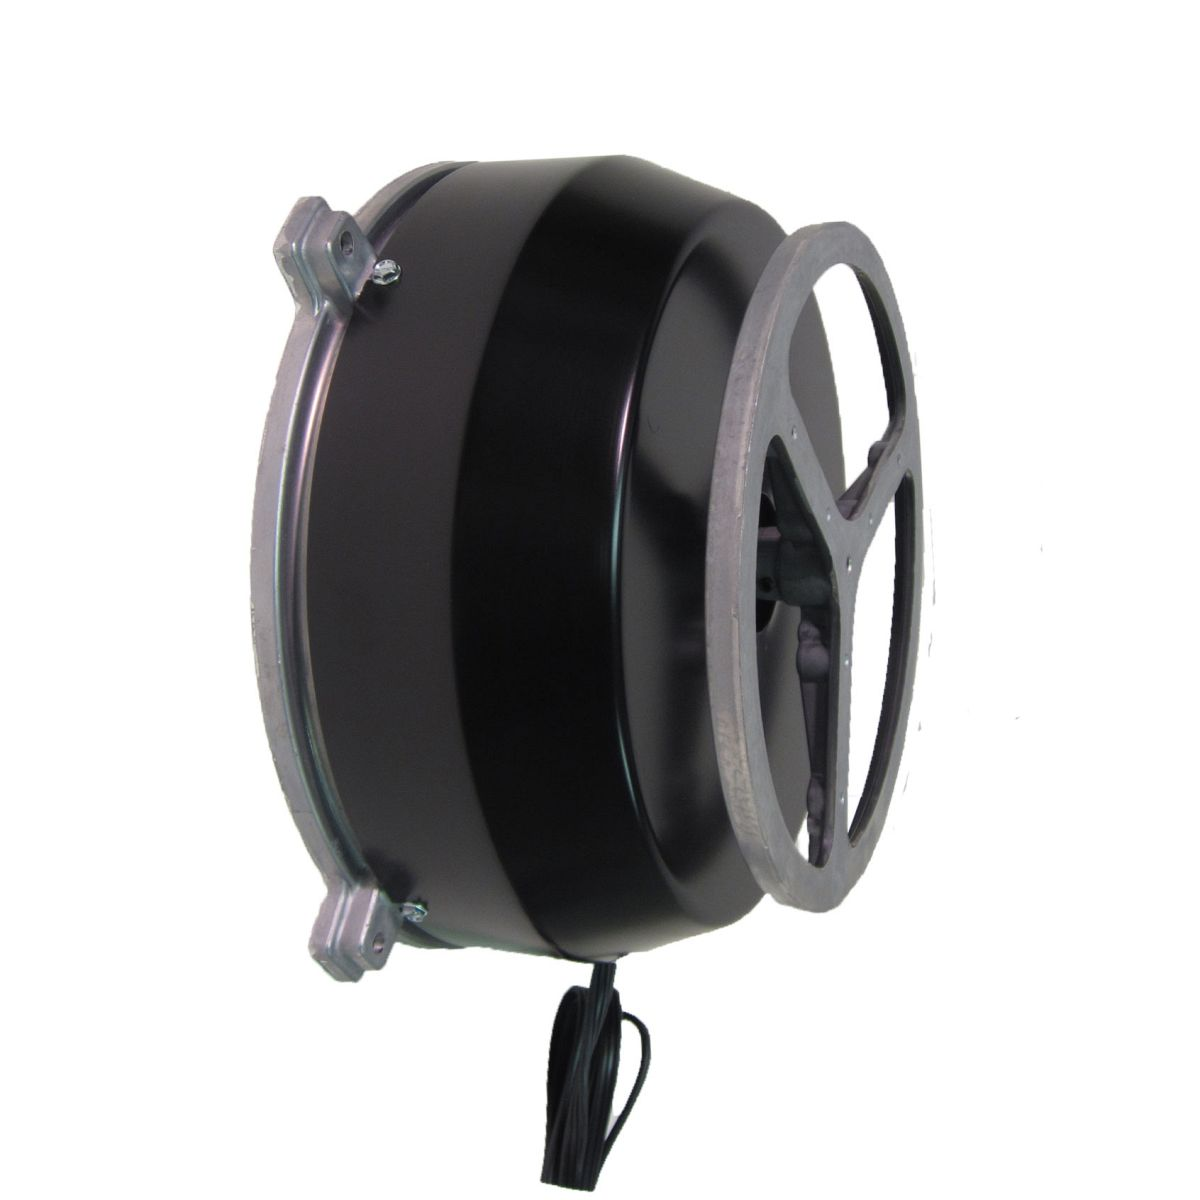 Wall Mount Turntable - 75 Pounds